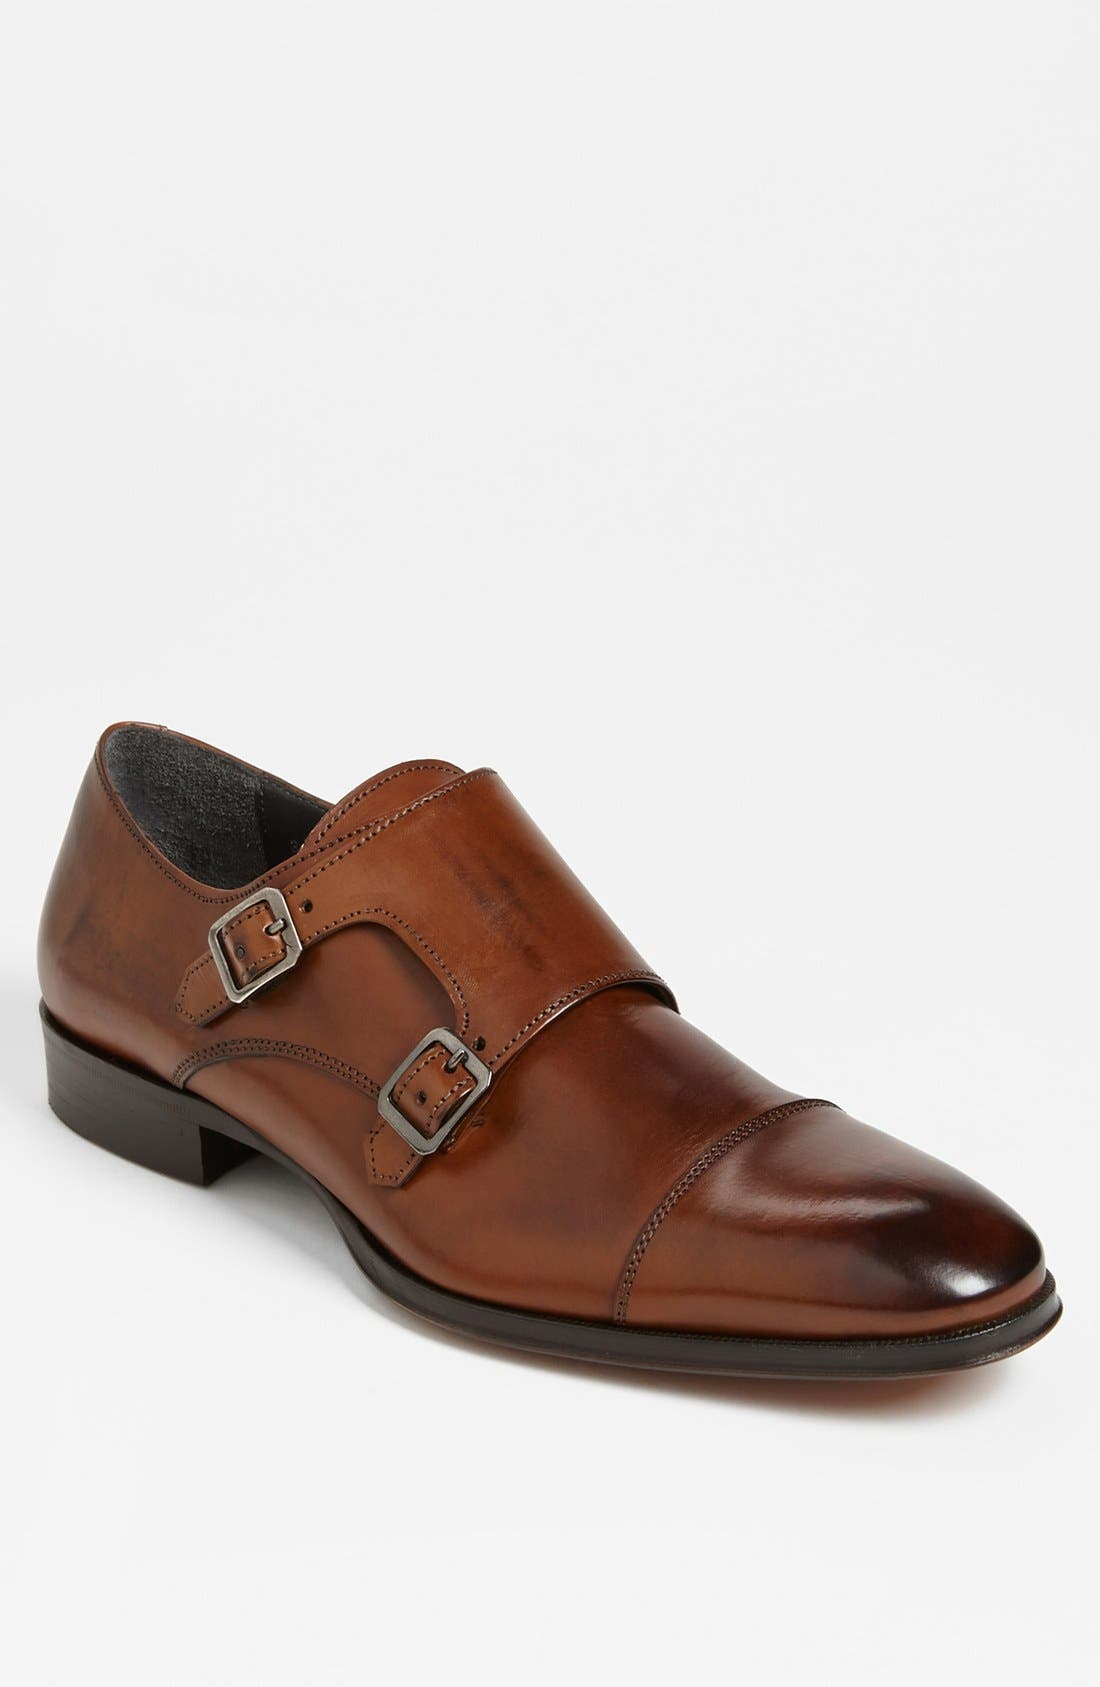 Alternate Image 1 Selected - To Boot New York 'Langley' Double Monk Strap Slip-On (Online Only)